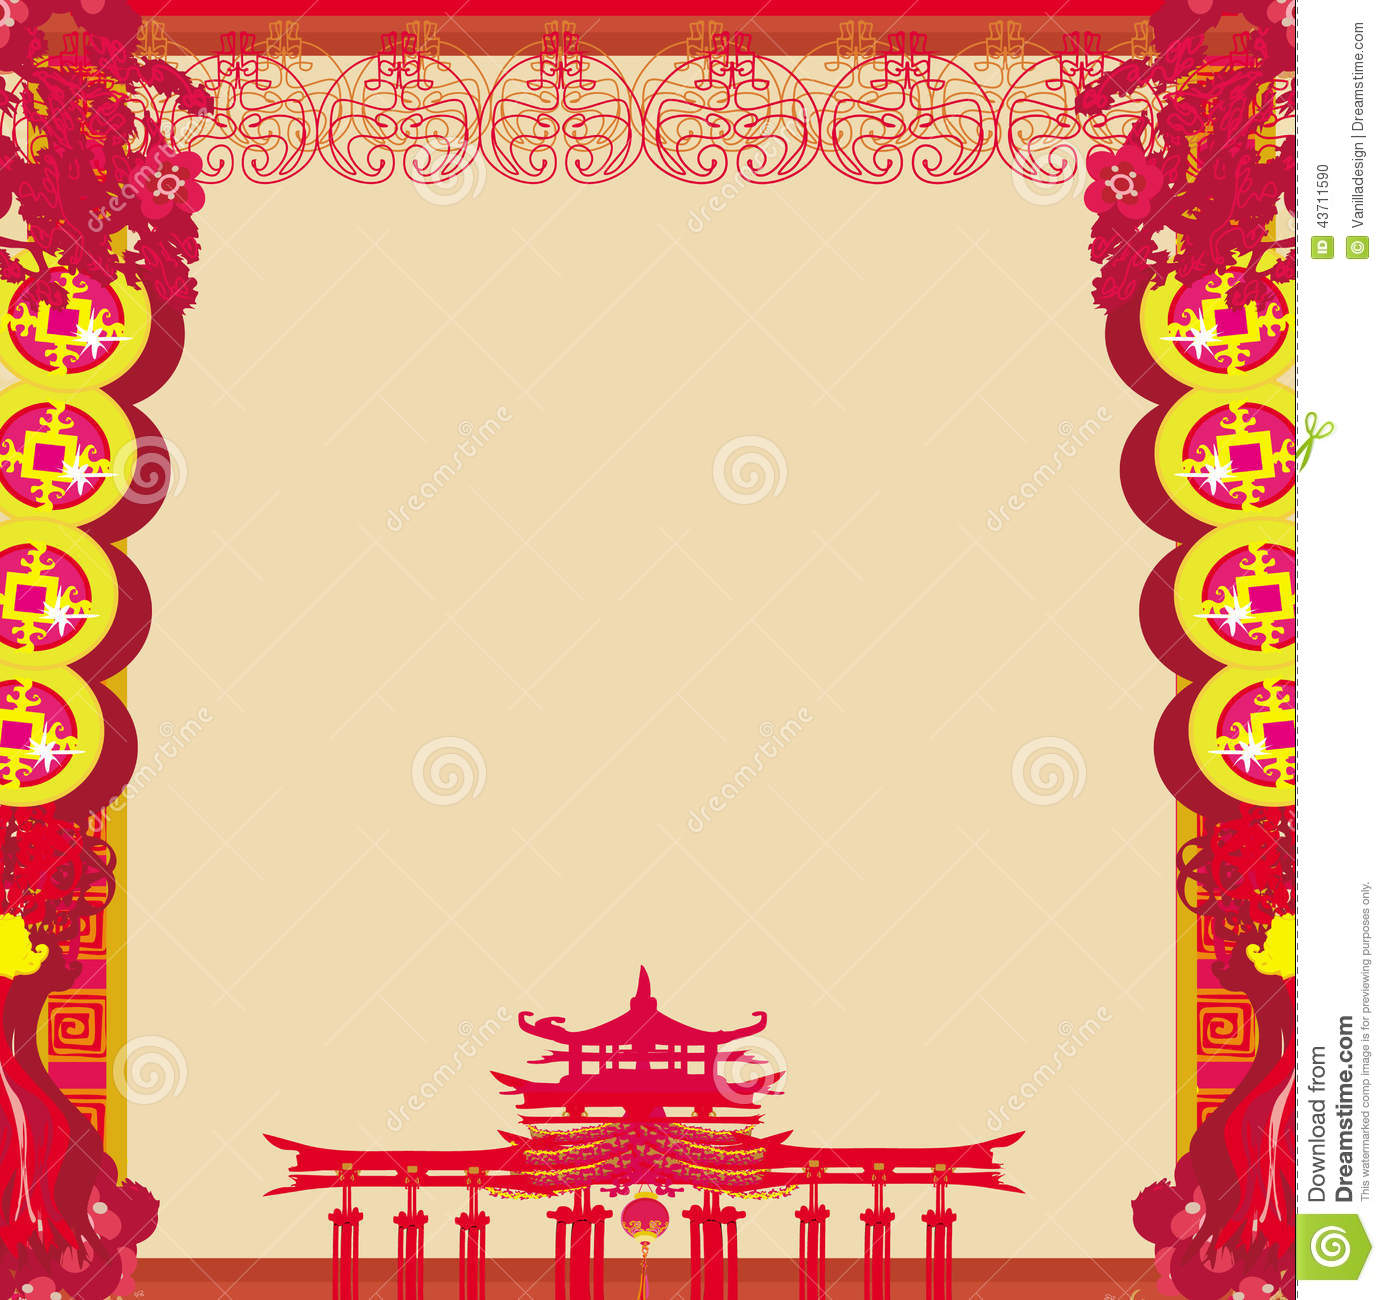 Mid-Autumn Festival For Chinese New Year - Frame Stock Vector - Image ...